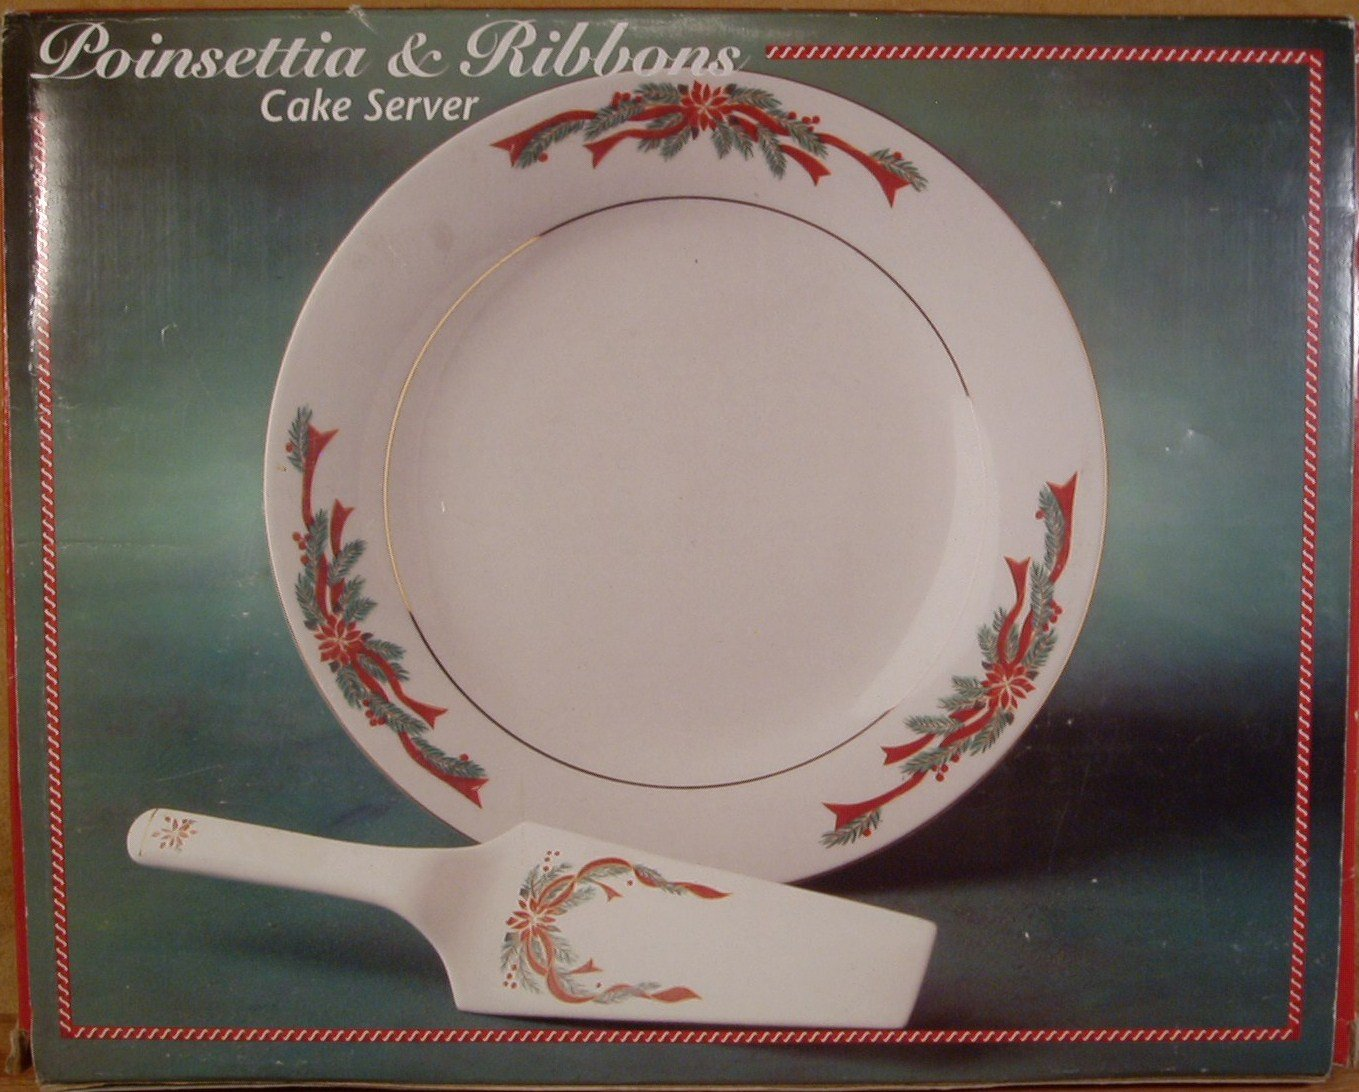 TIENSHAN FAIRFIELD POINSETTIA & RIBBONS CAKE SERVER MINT IN BOX